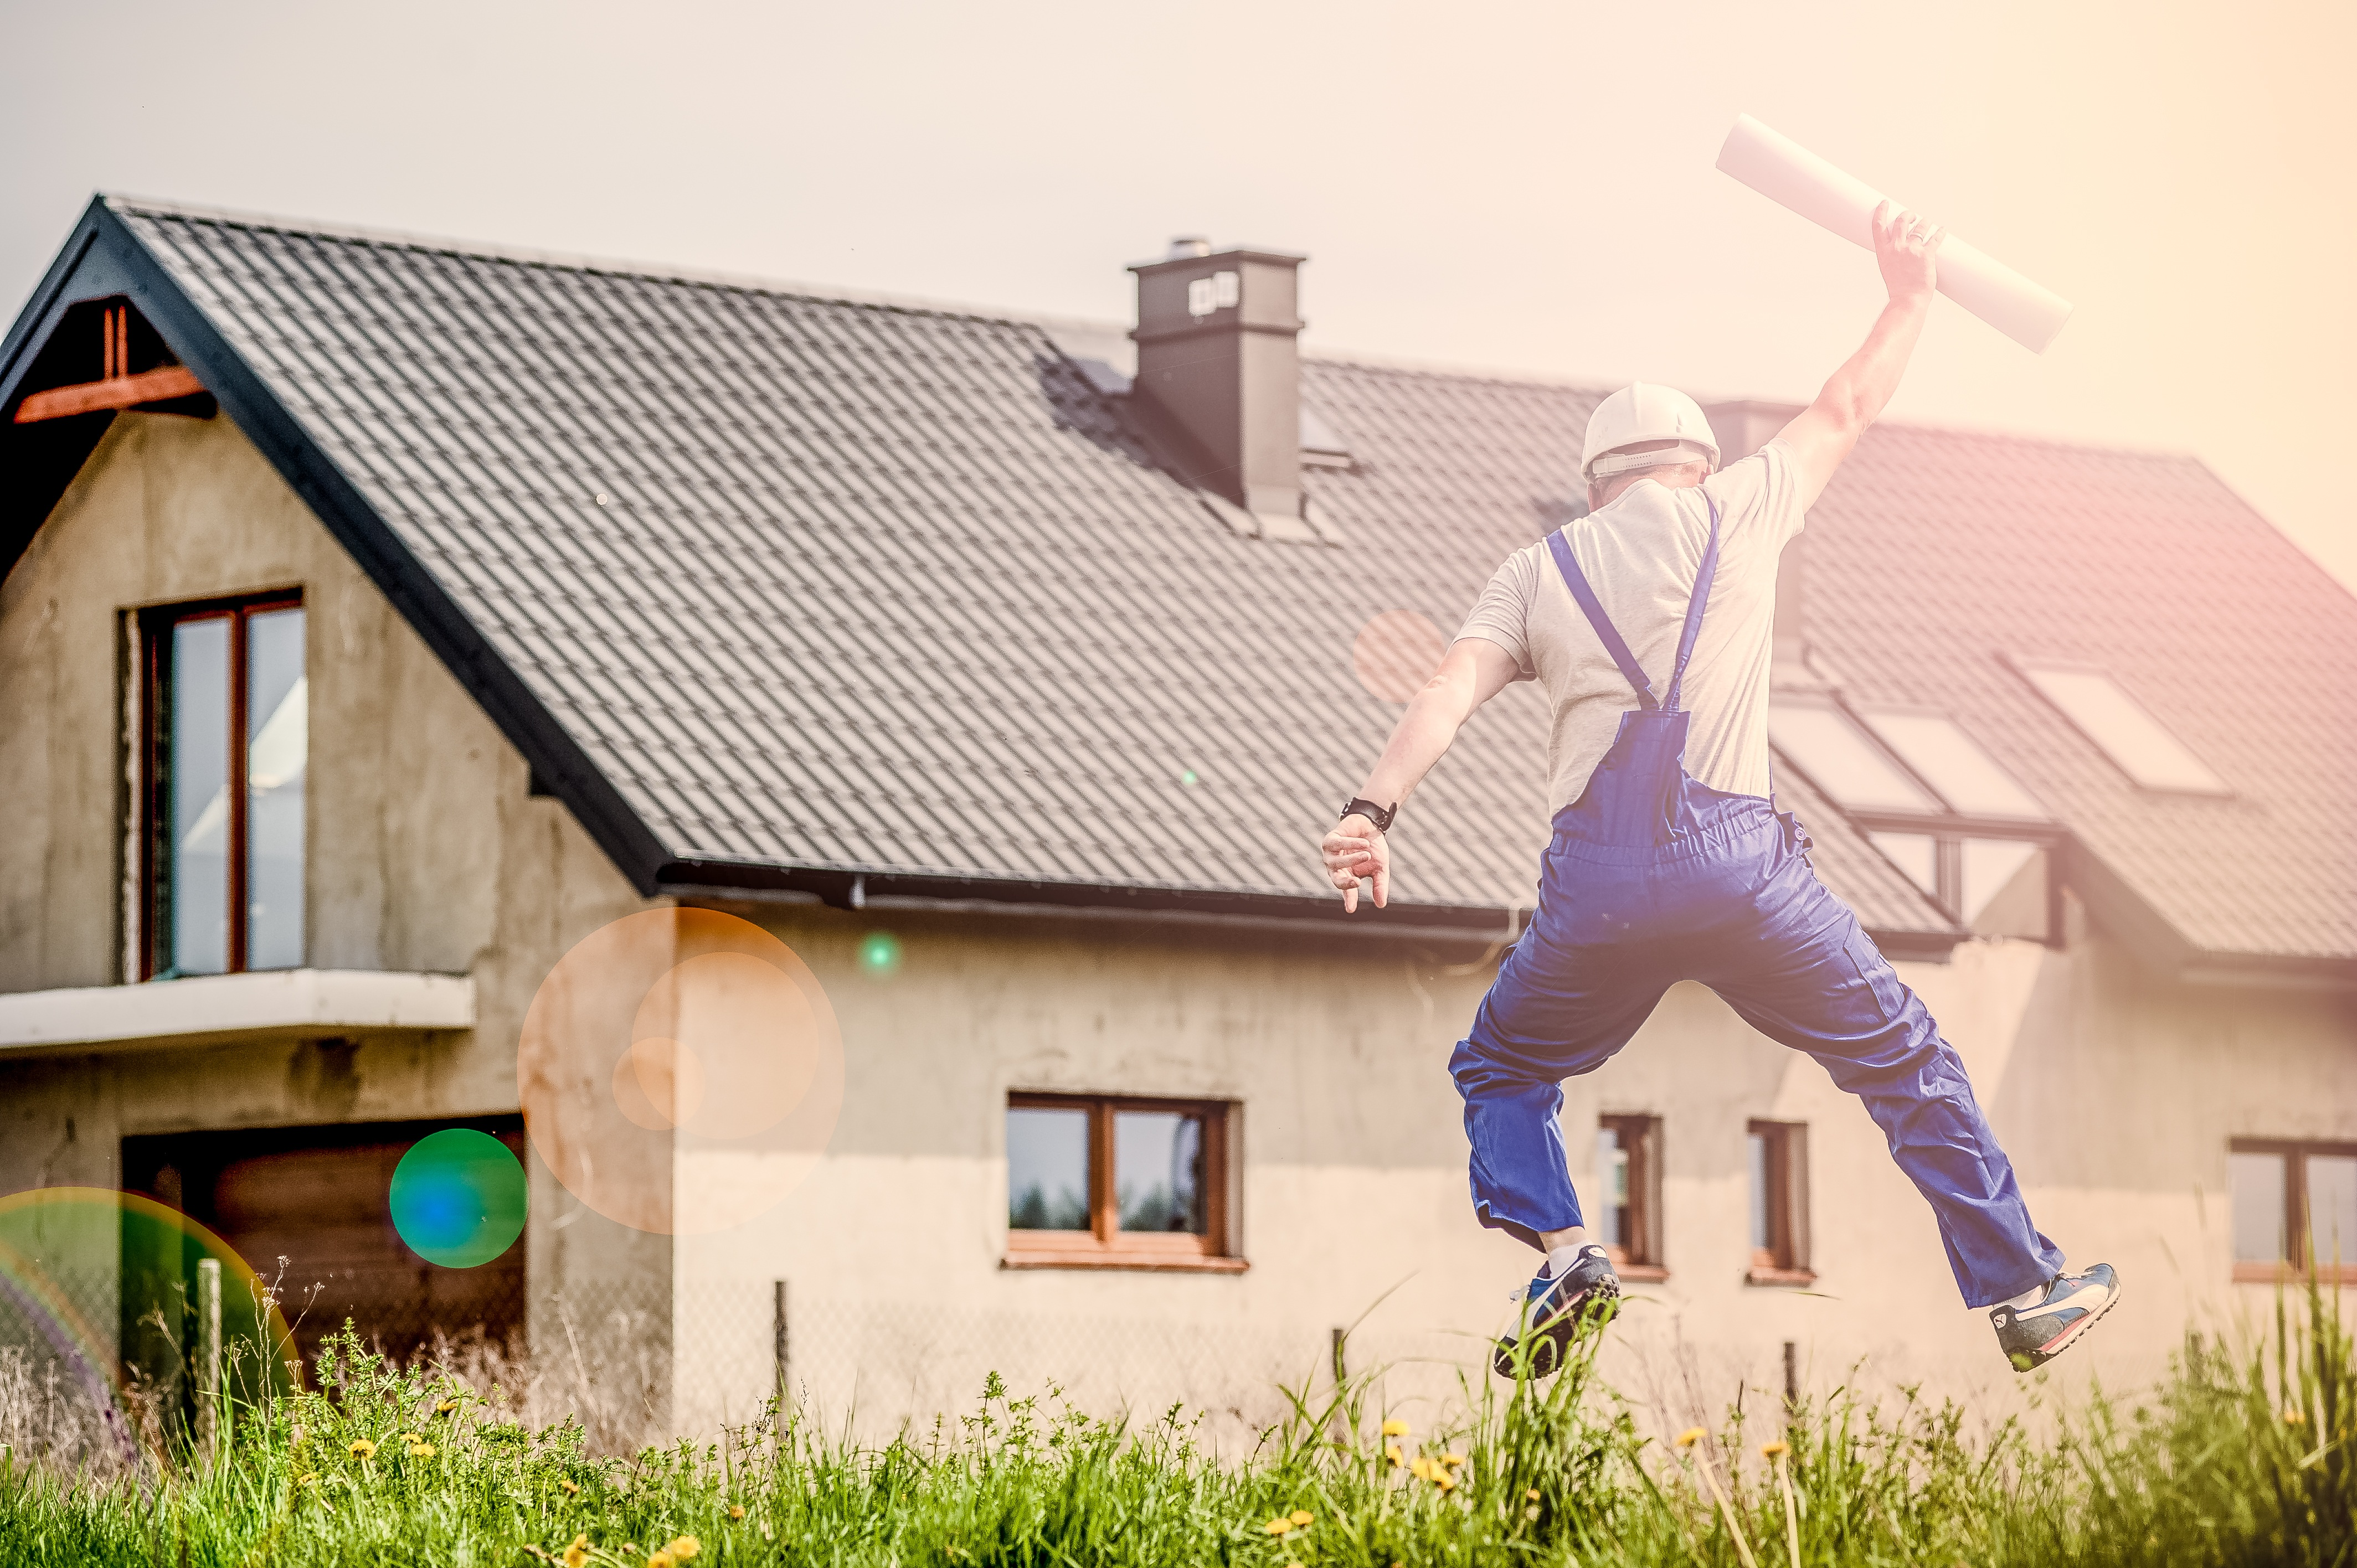 Man Jumping in Front of House